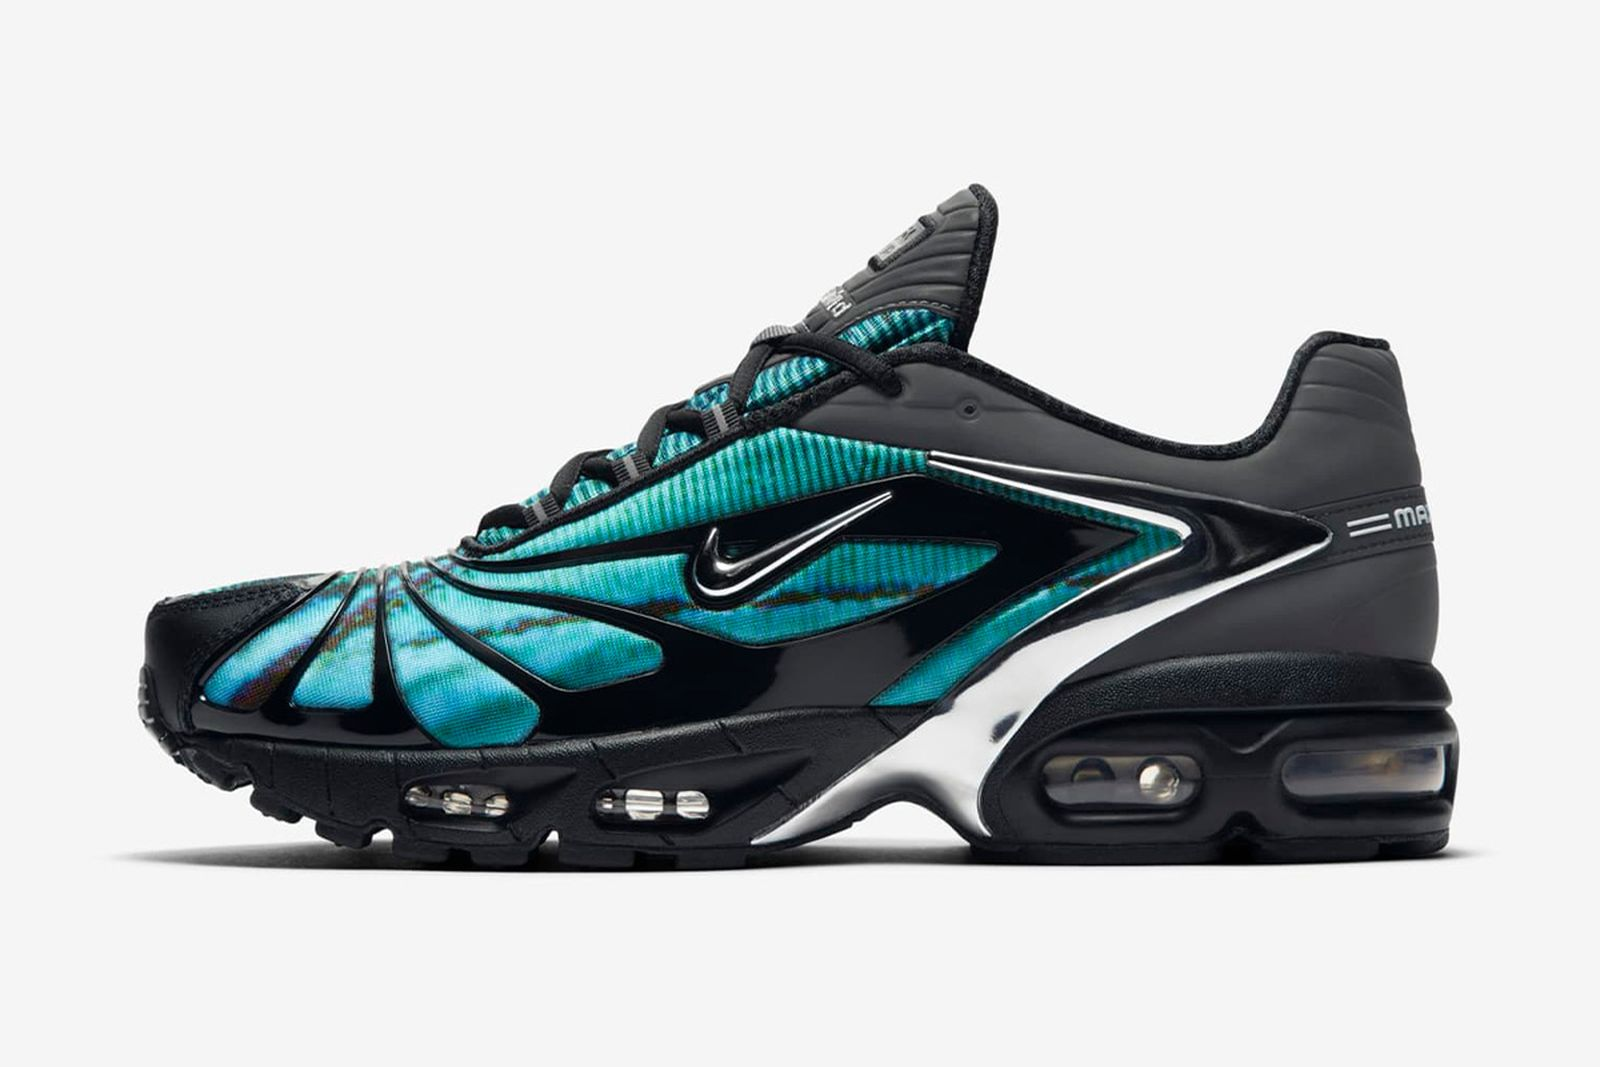 skepta-nike-air-max-tailwind-5-release-date-price-official-04